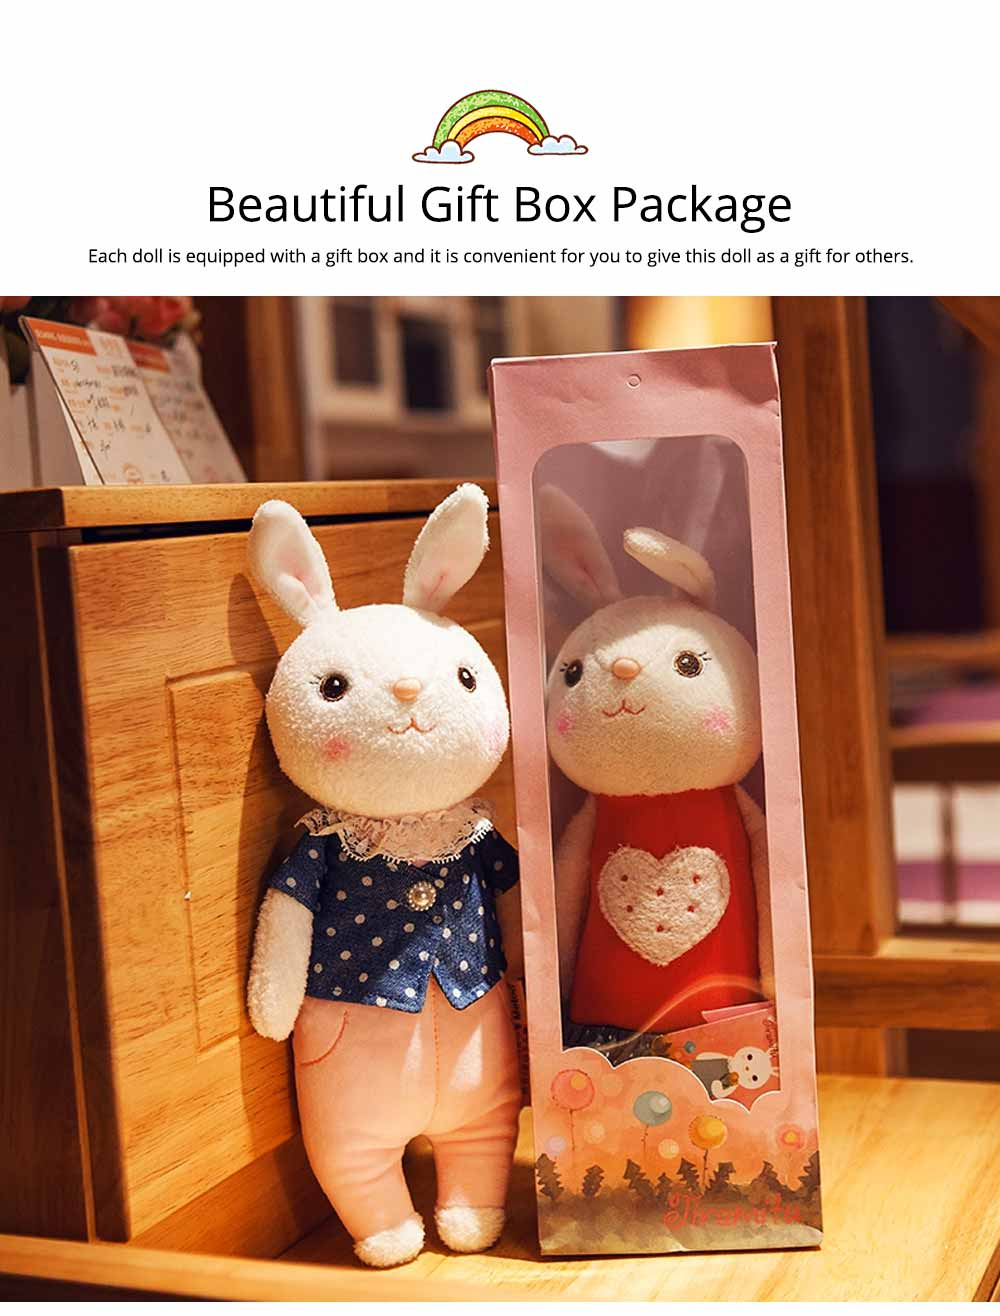 Cute Cartoon Tiramitu Rabbit Plush Stuffed Toy, Ultrasoft Smooth Children's Day Present Doll 7